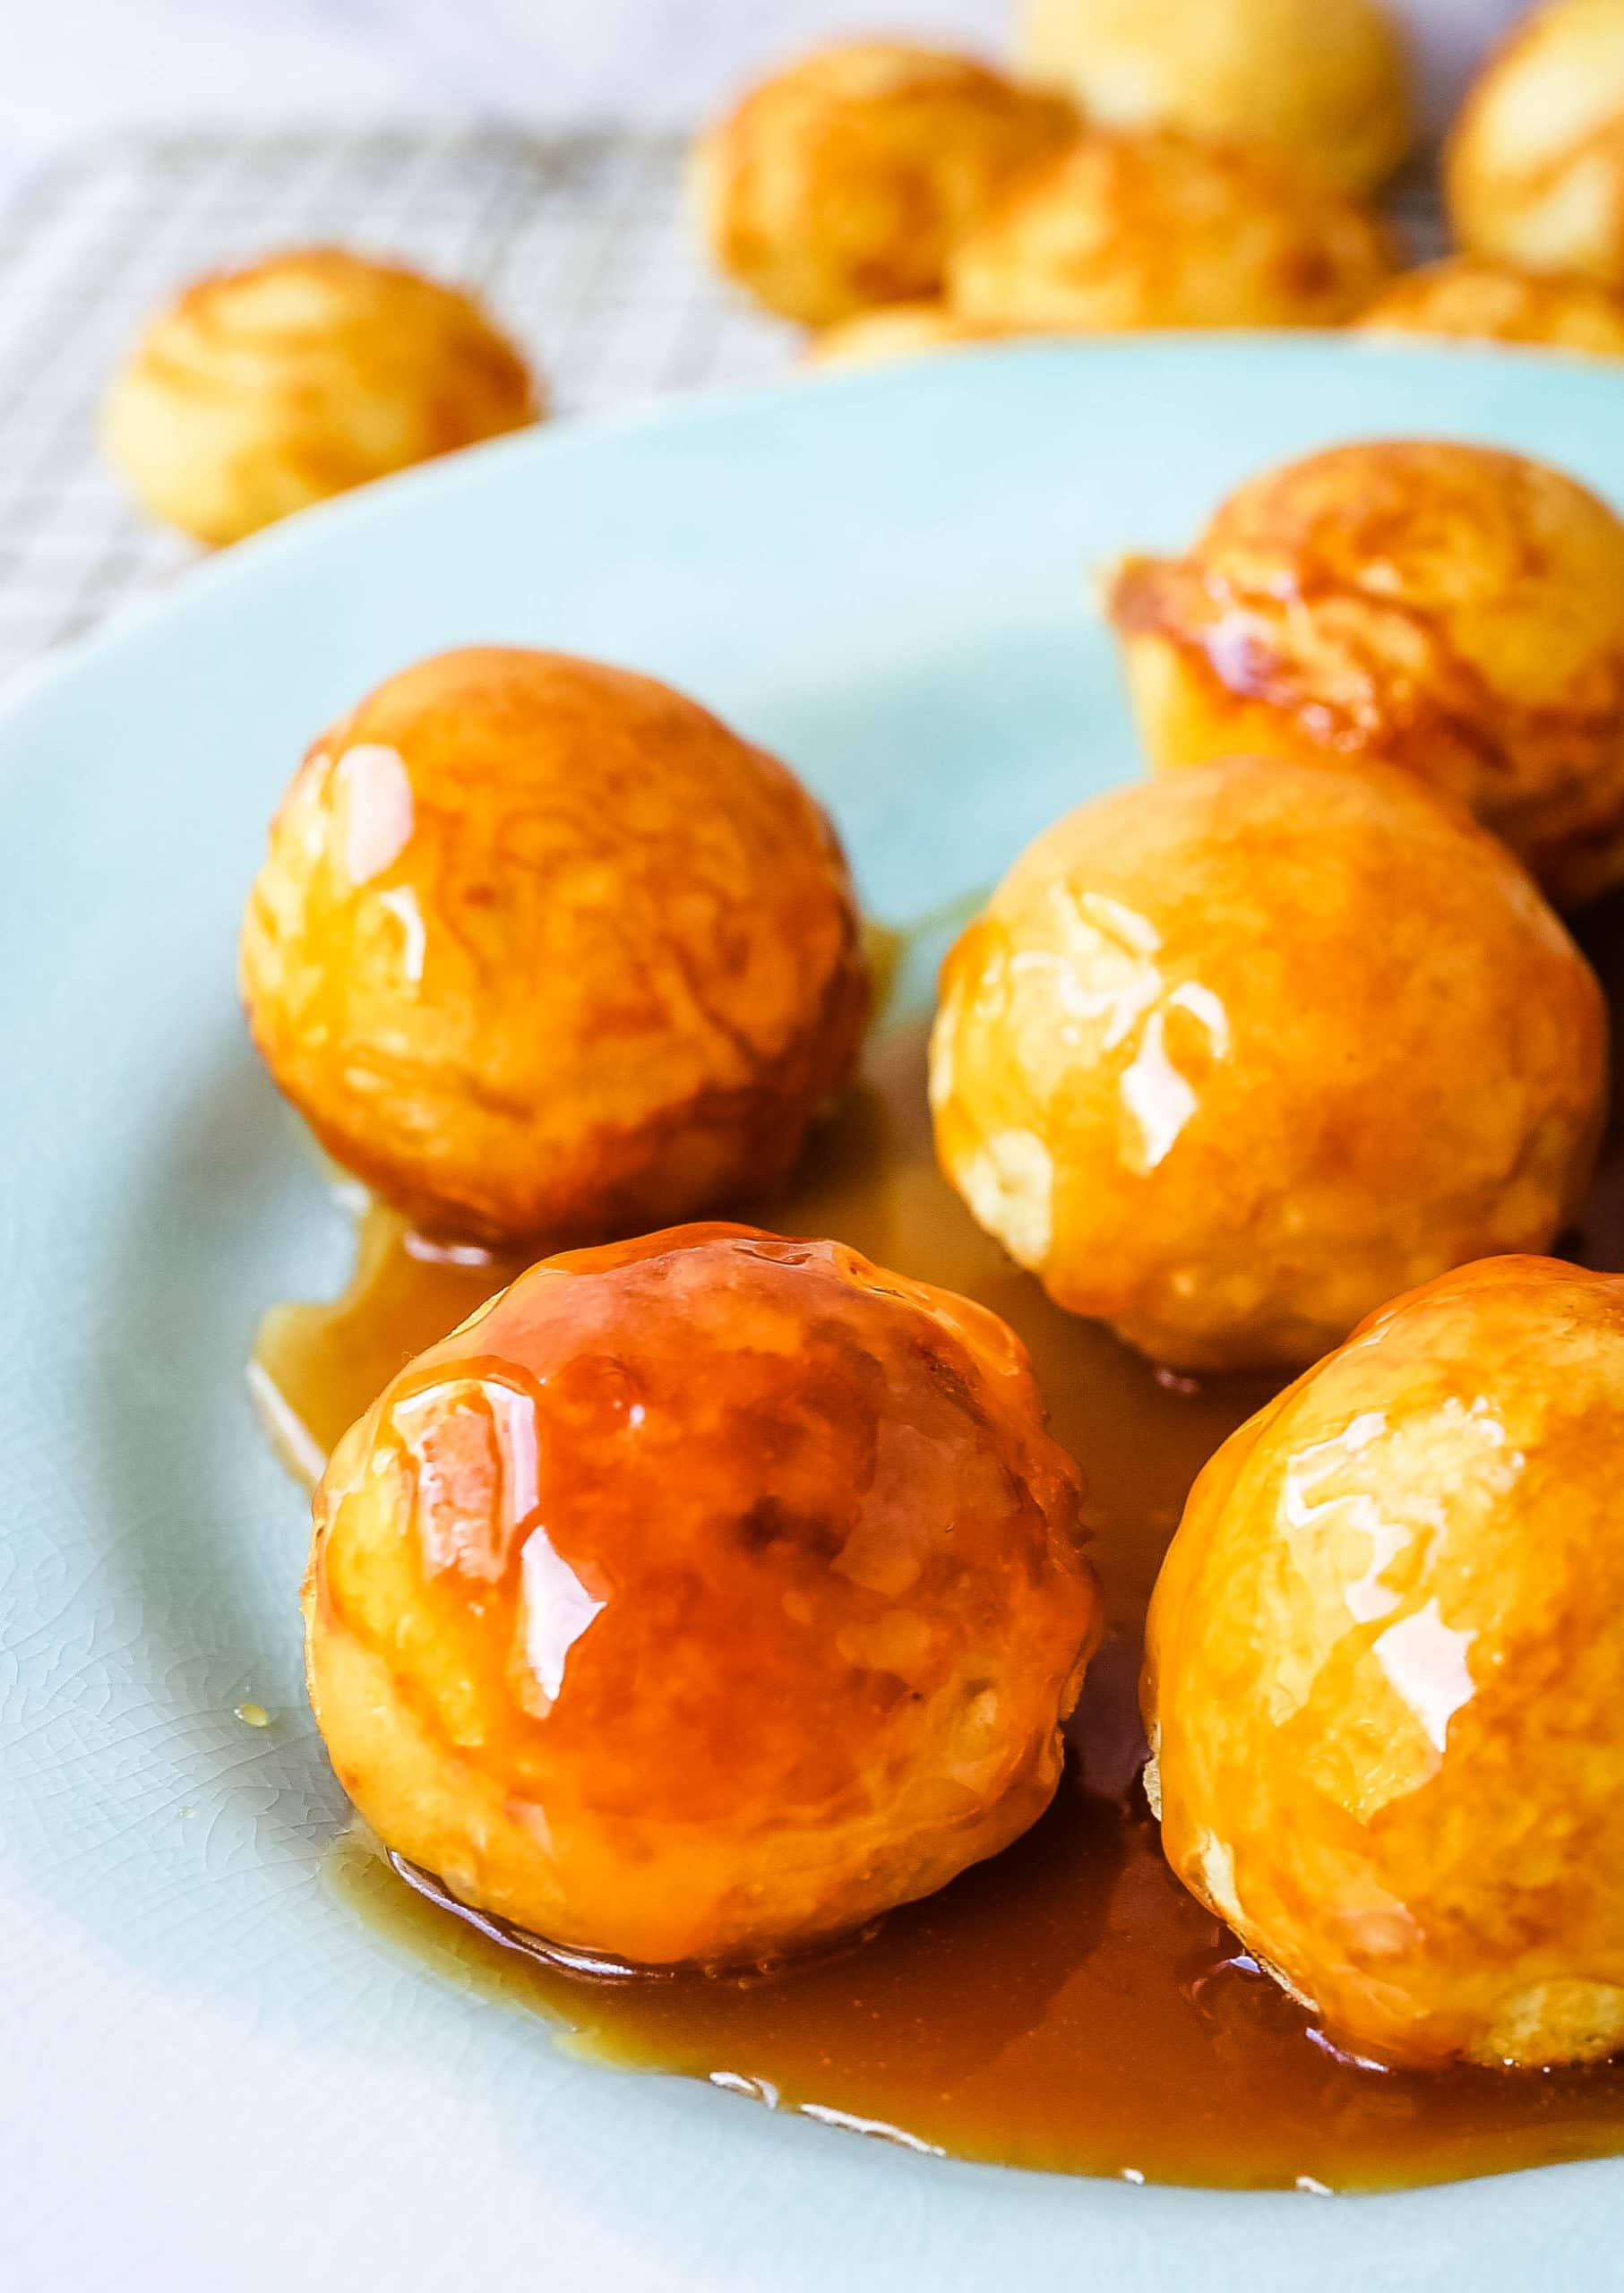 Aebleskiver Danish Pancakes a traditional Danish breakfast or dessert popular in Denmark is a circle pancake cooked in an aebleskiver pan and served with jam, powdered sugar, syrup, and fruit.  www.modernhoney.com #aebleskivers #danishpancakes #pancakes